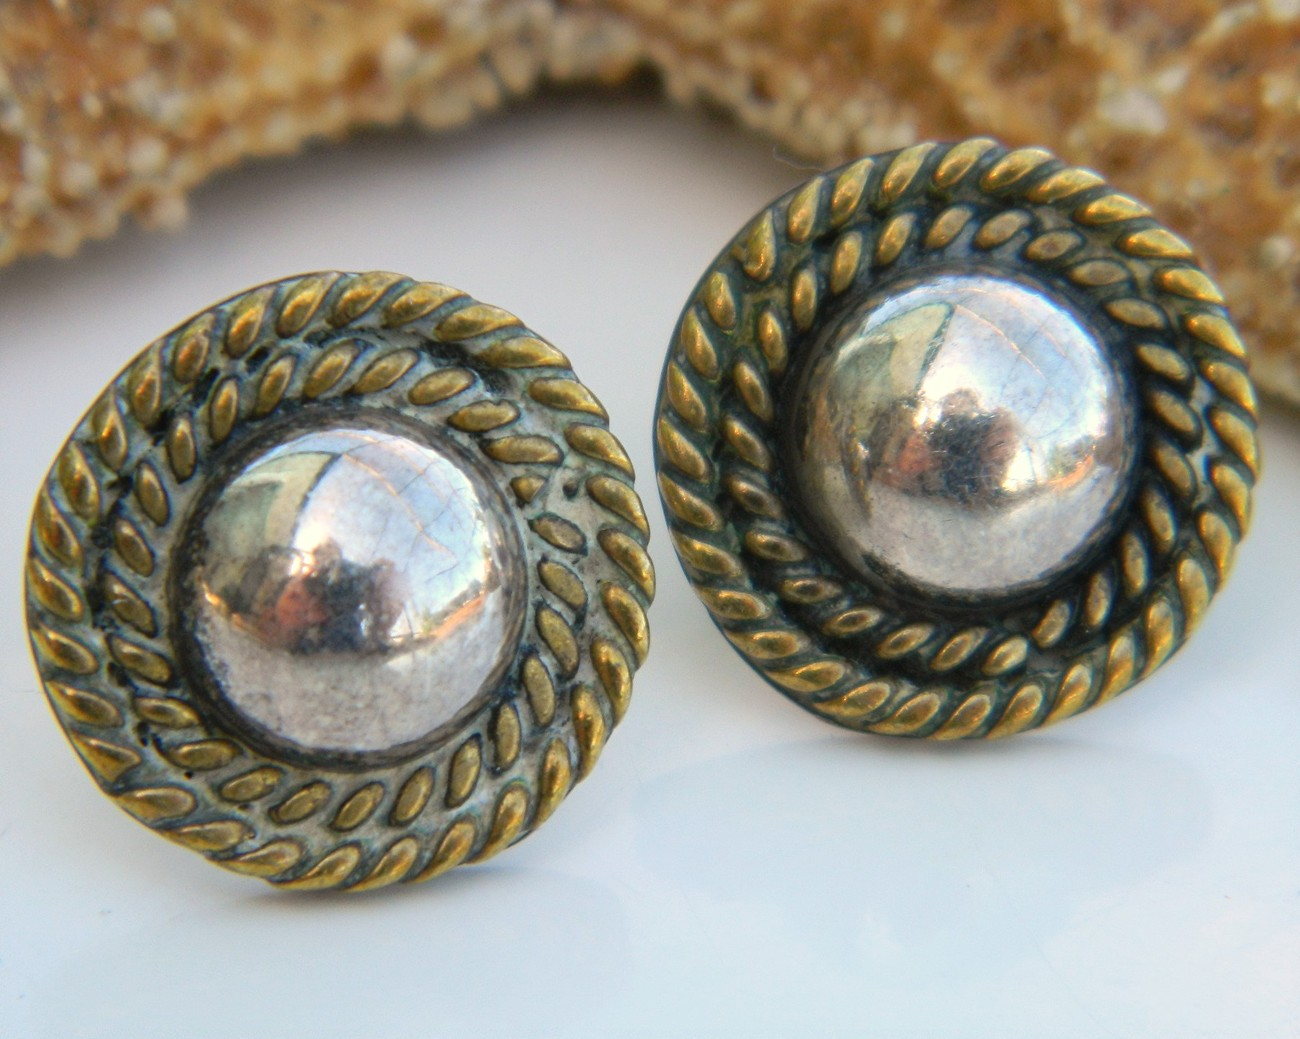 Vintage Taxco Mexico Sterling Silver Ball Rope Earrings